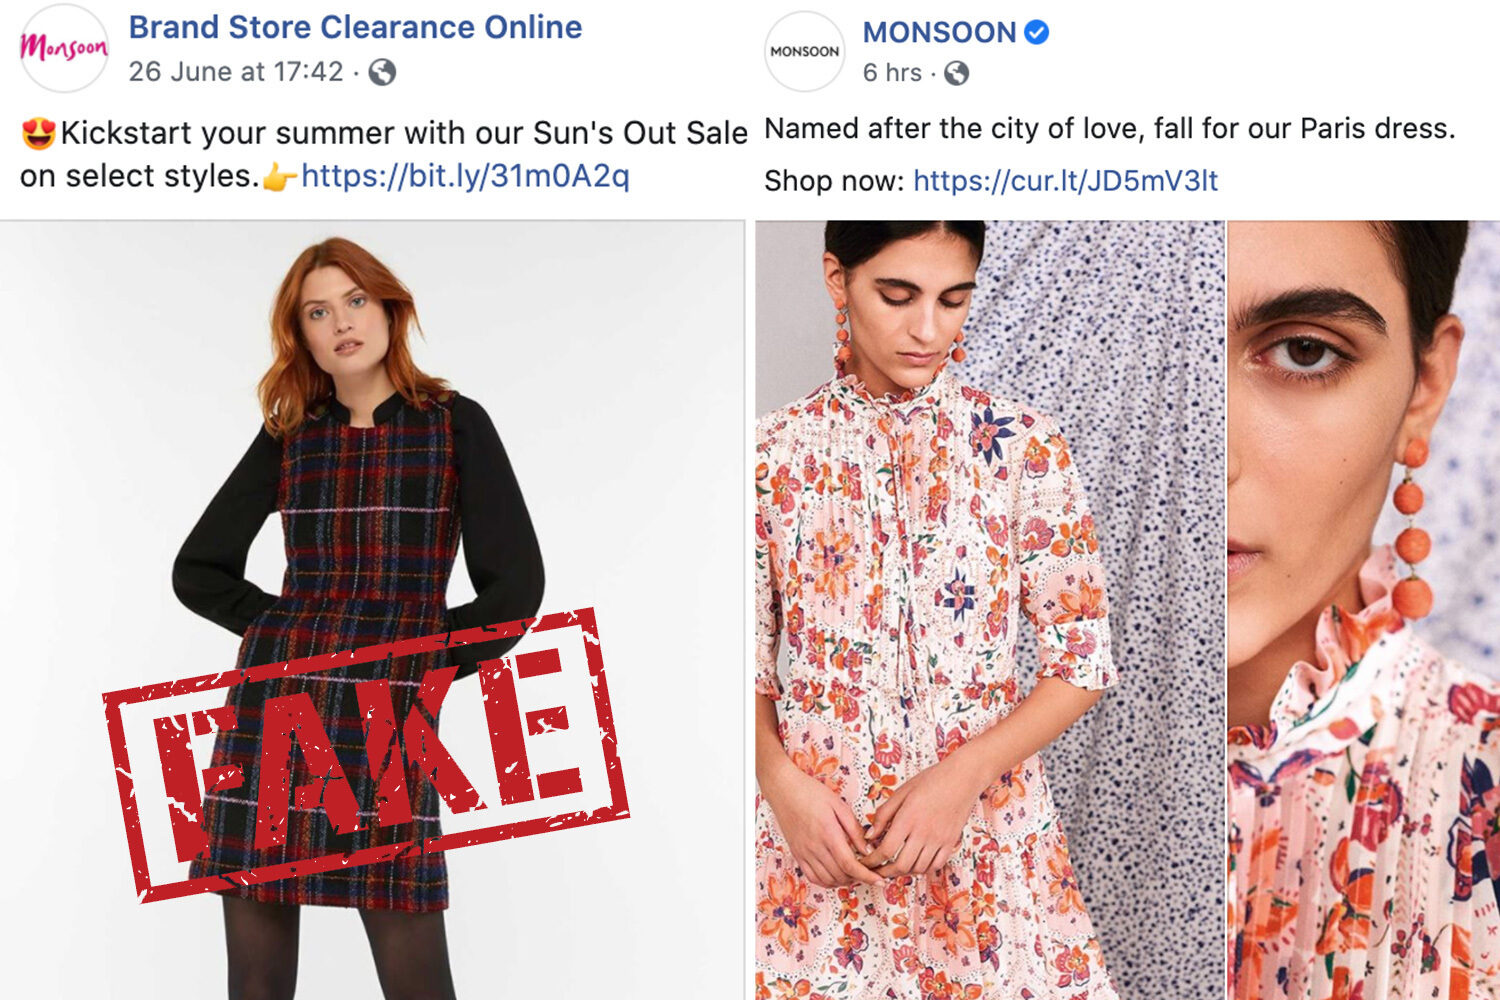 A shop, under the name of Brand Store Clearance Online (left) impersonated the Monsoon Facebook page (right)